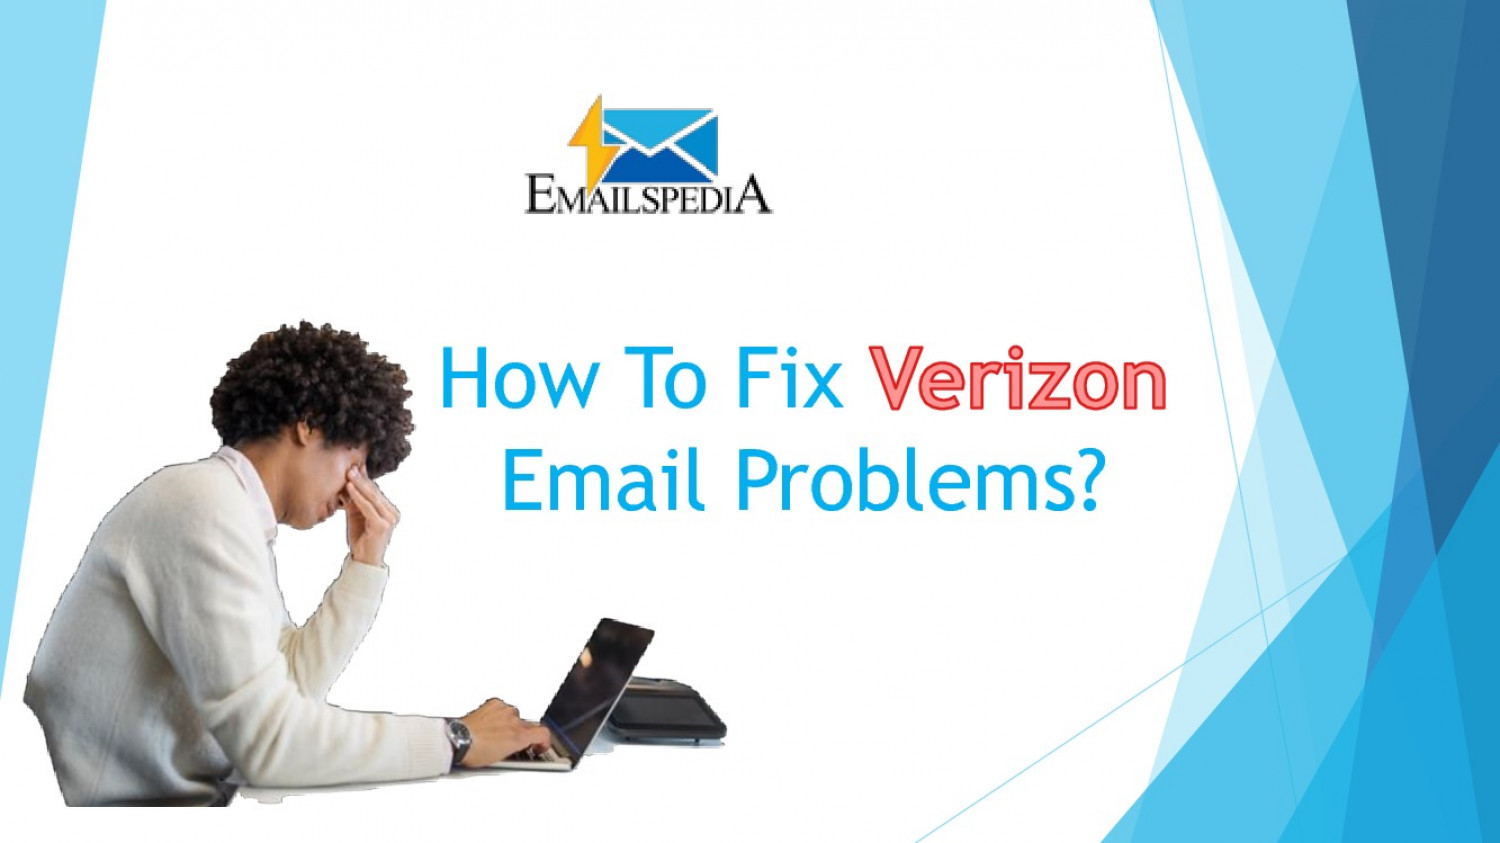 Best 5 Solutions to Fix Verizon Log-in Issues Infographic